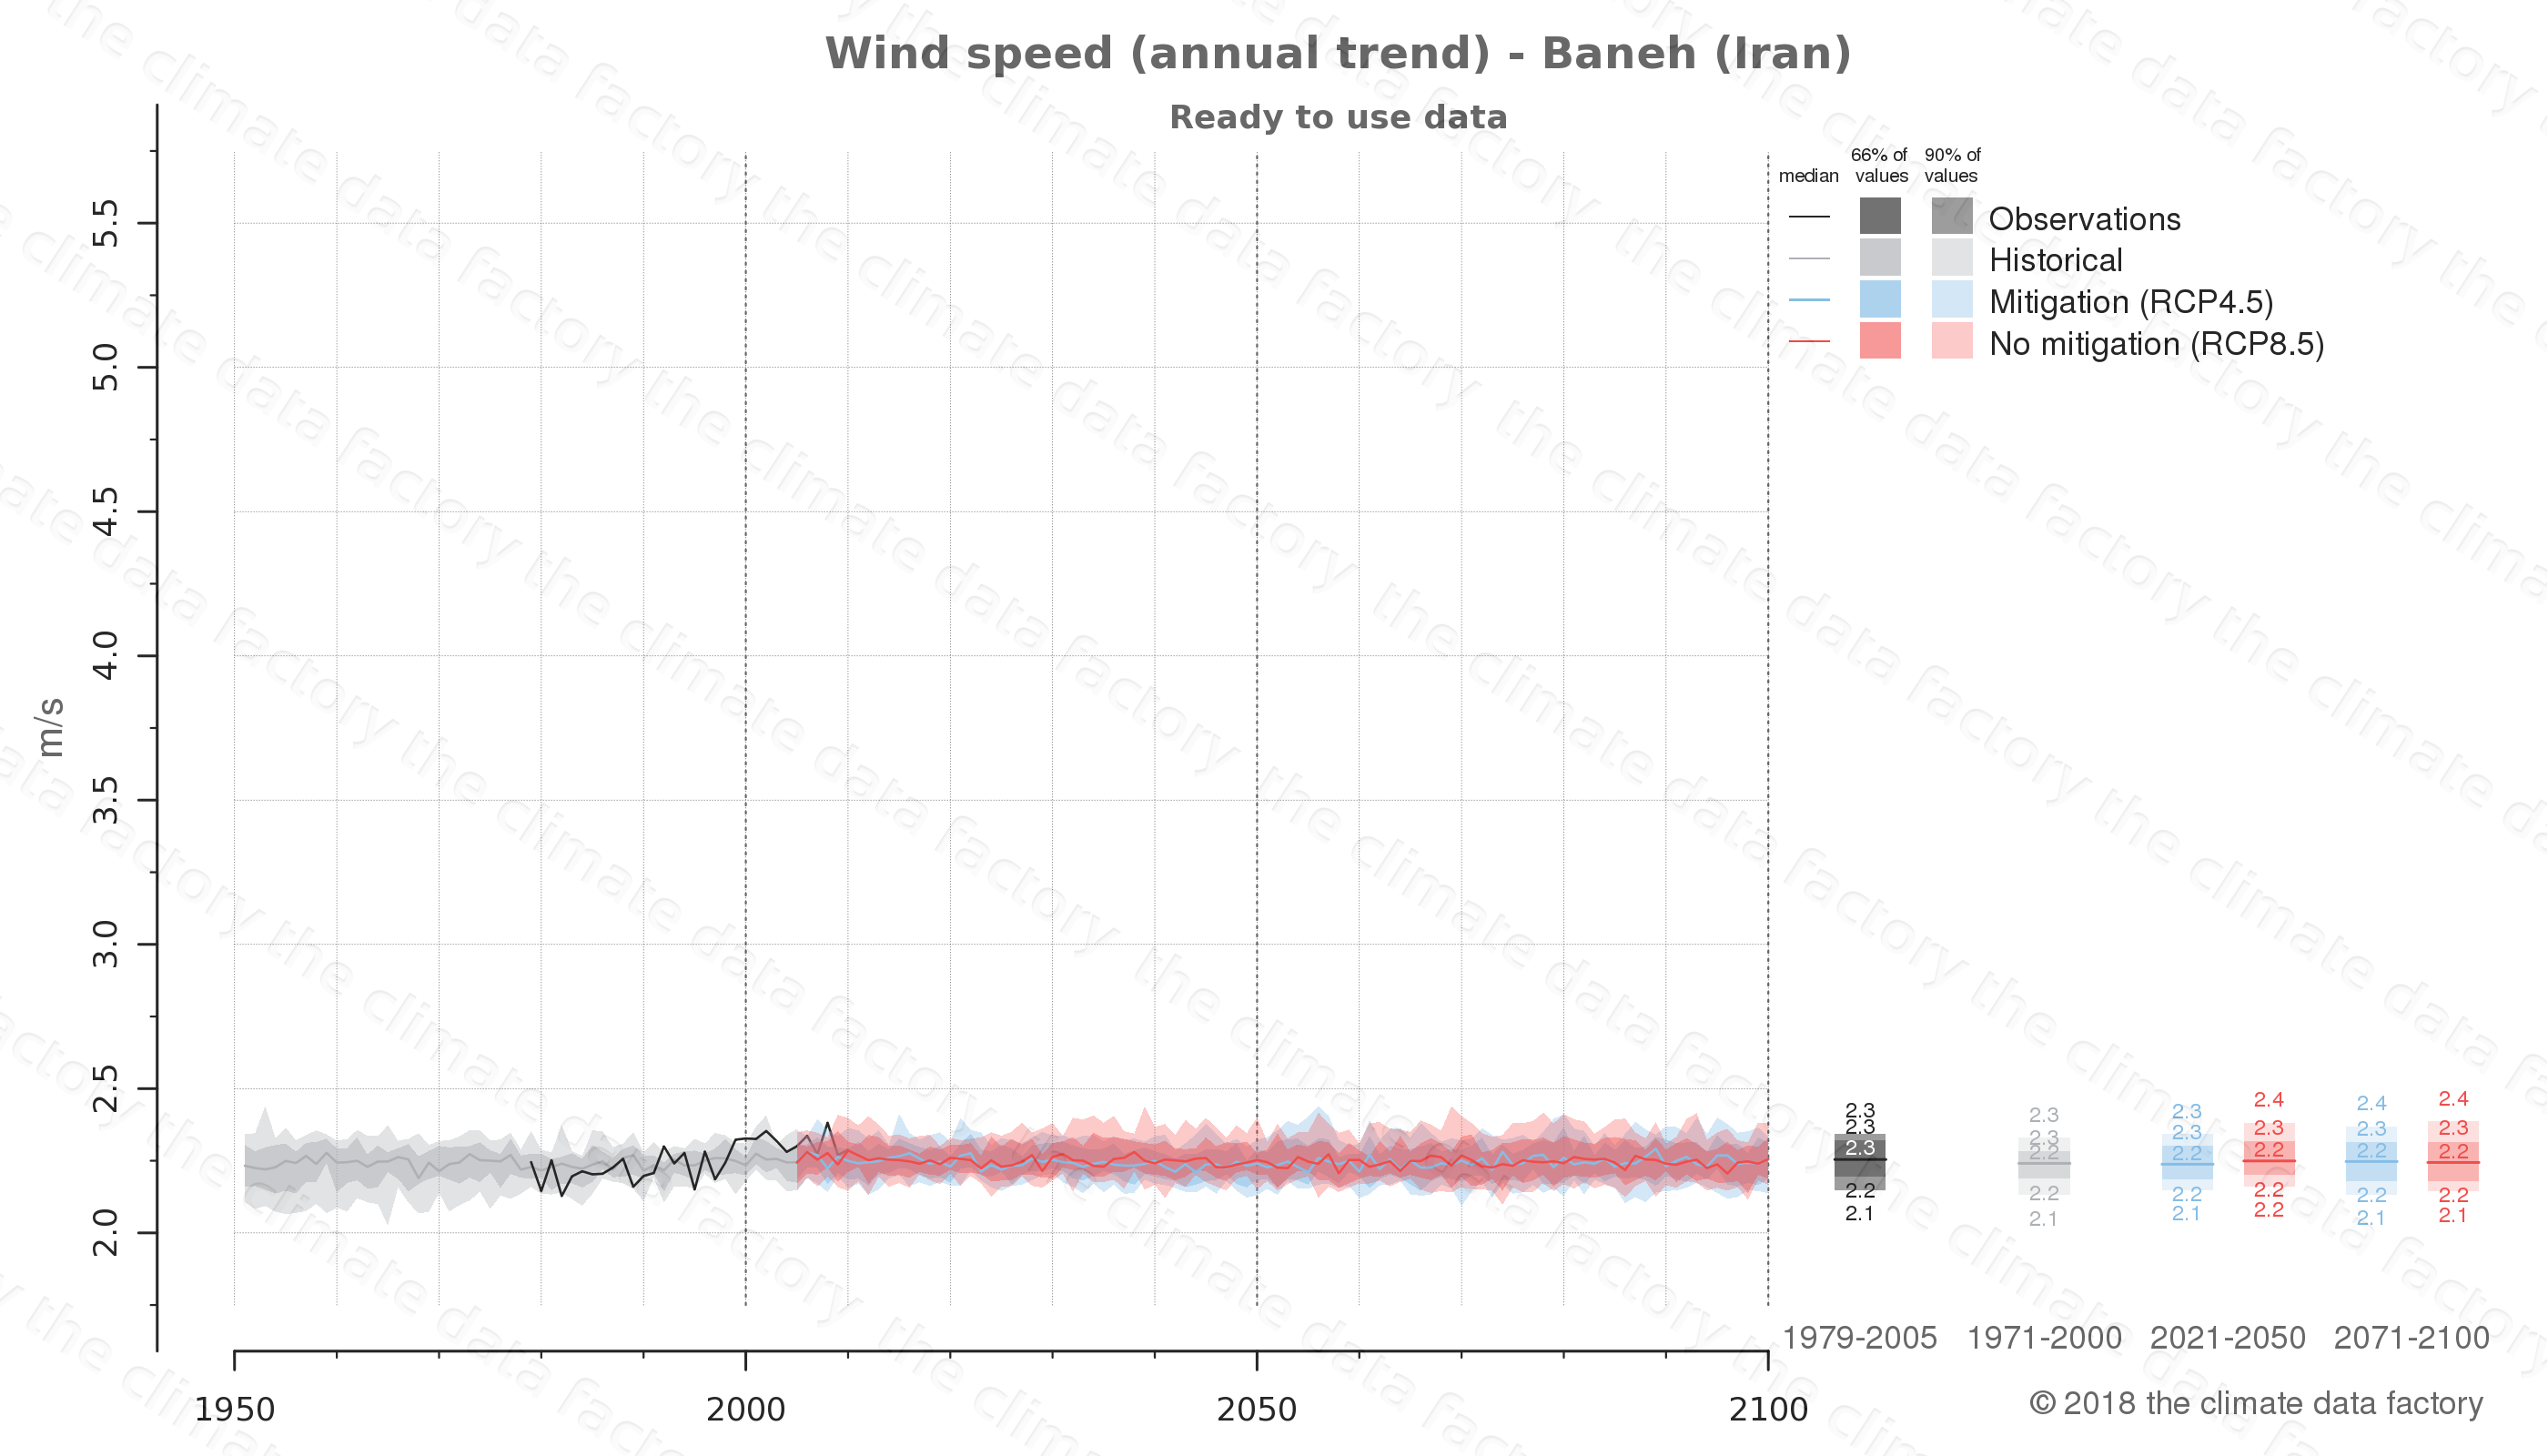 climate change data policy adaptation climate graph city data wind-speed baneh iran